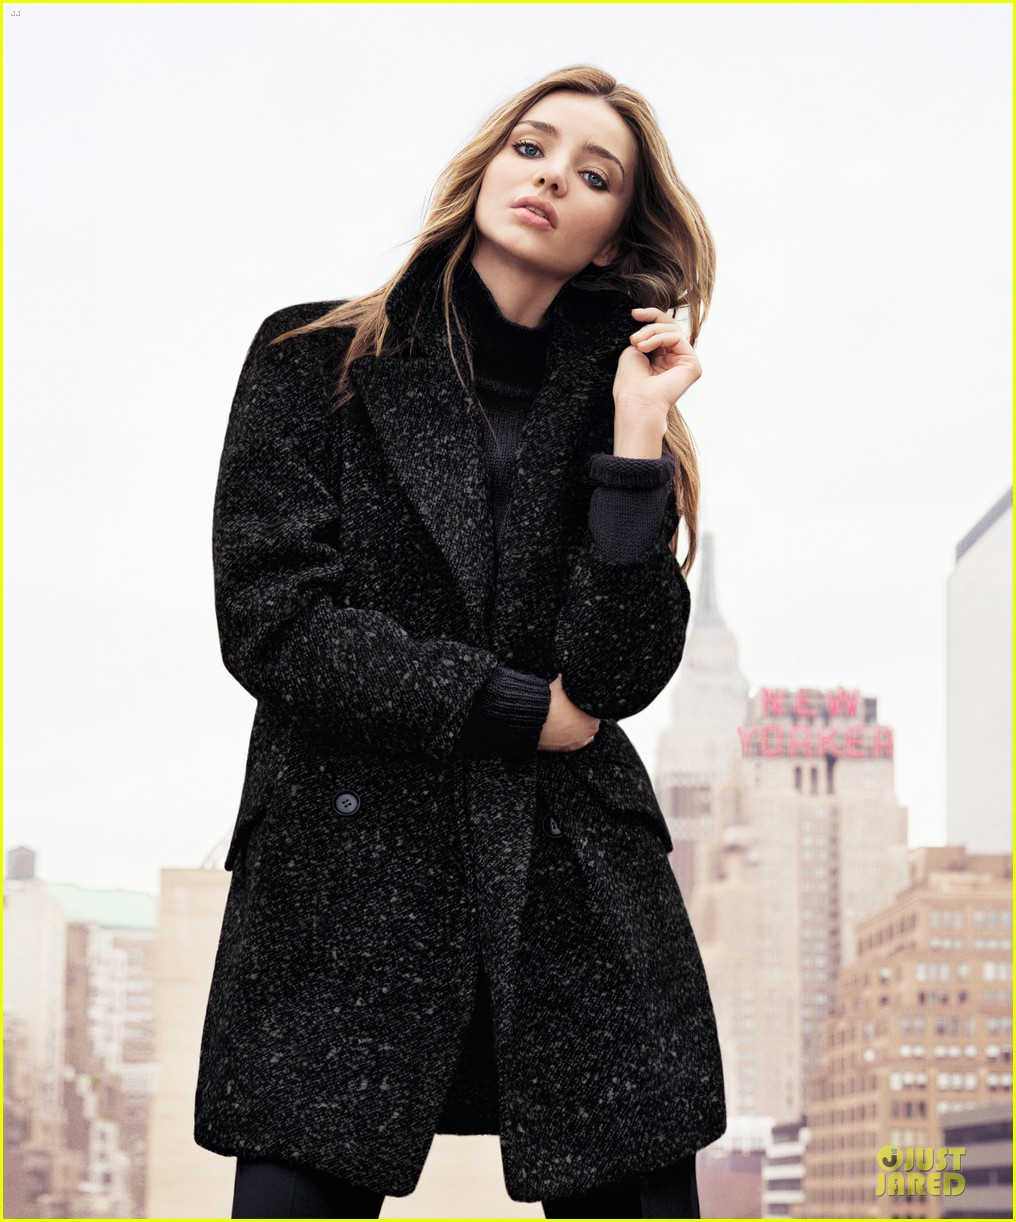 miranda kerr mango winter 2013 campaign pics video 072968507